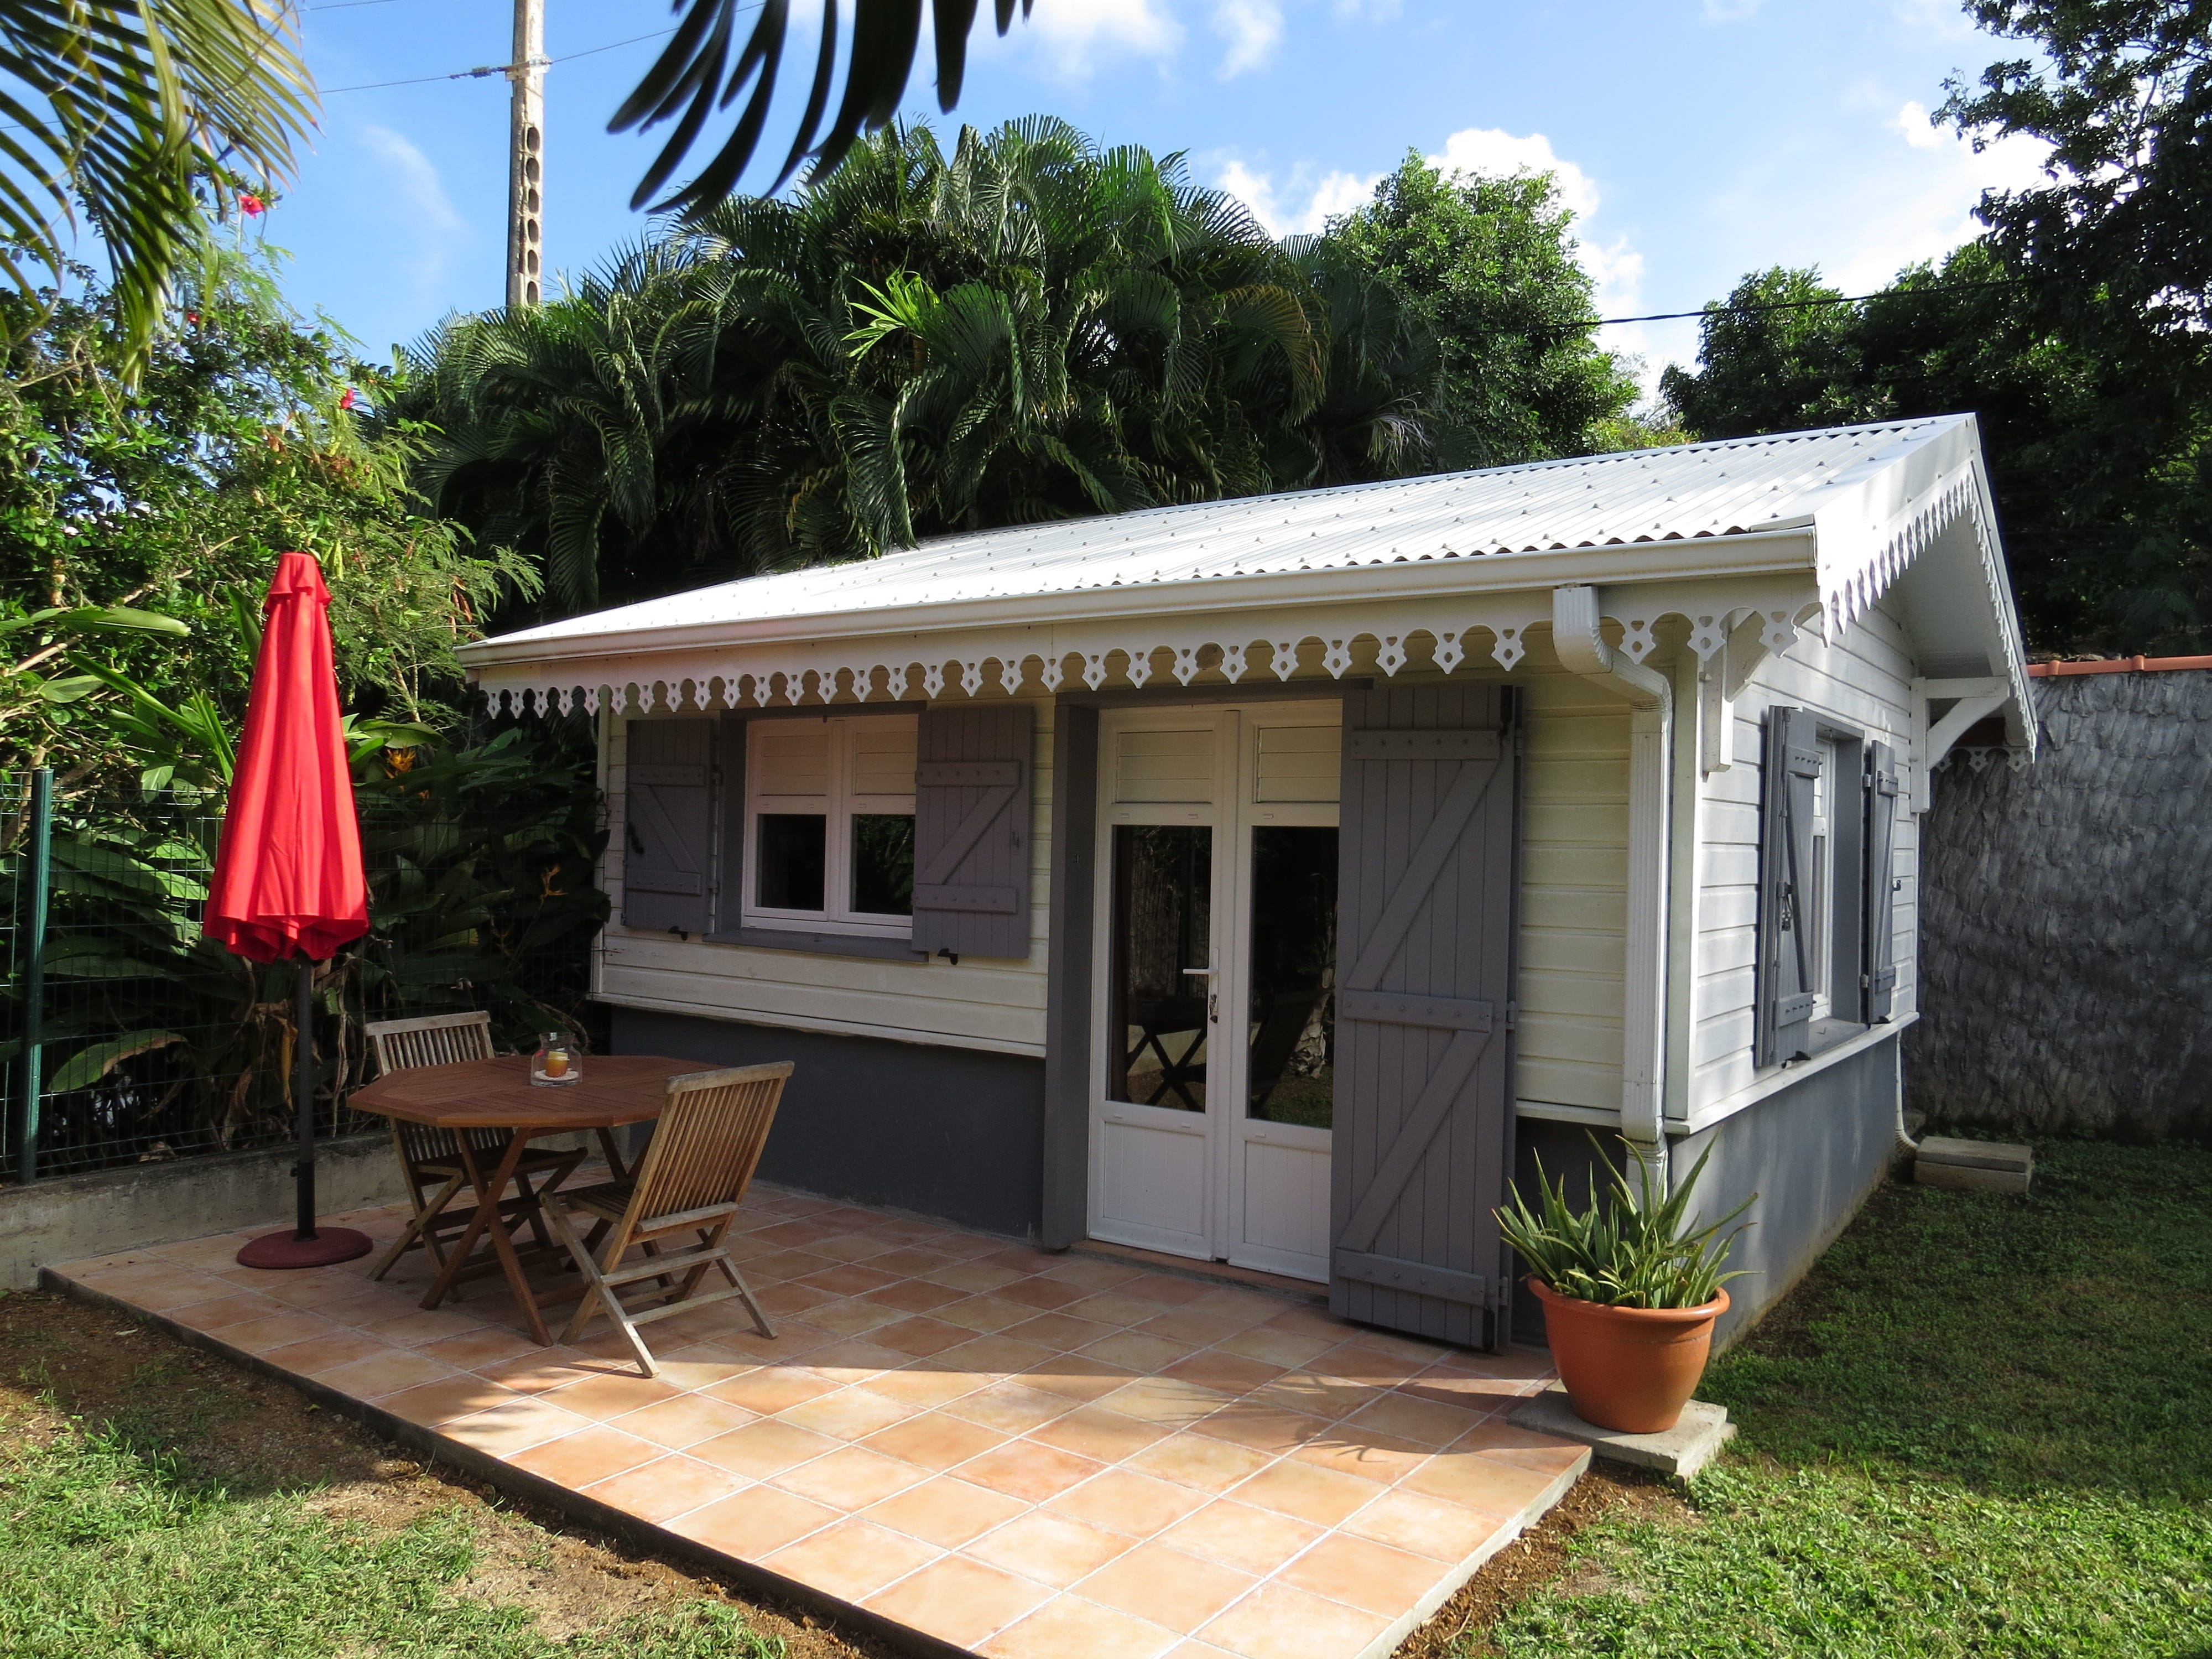 A bungalow in Martinique